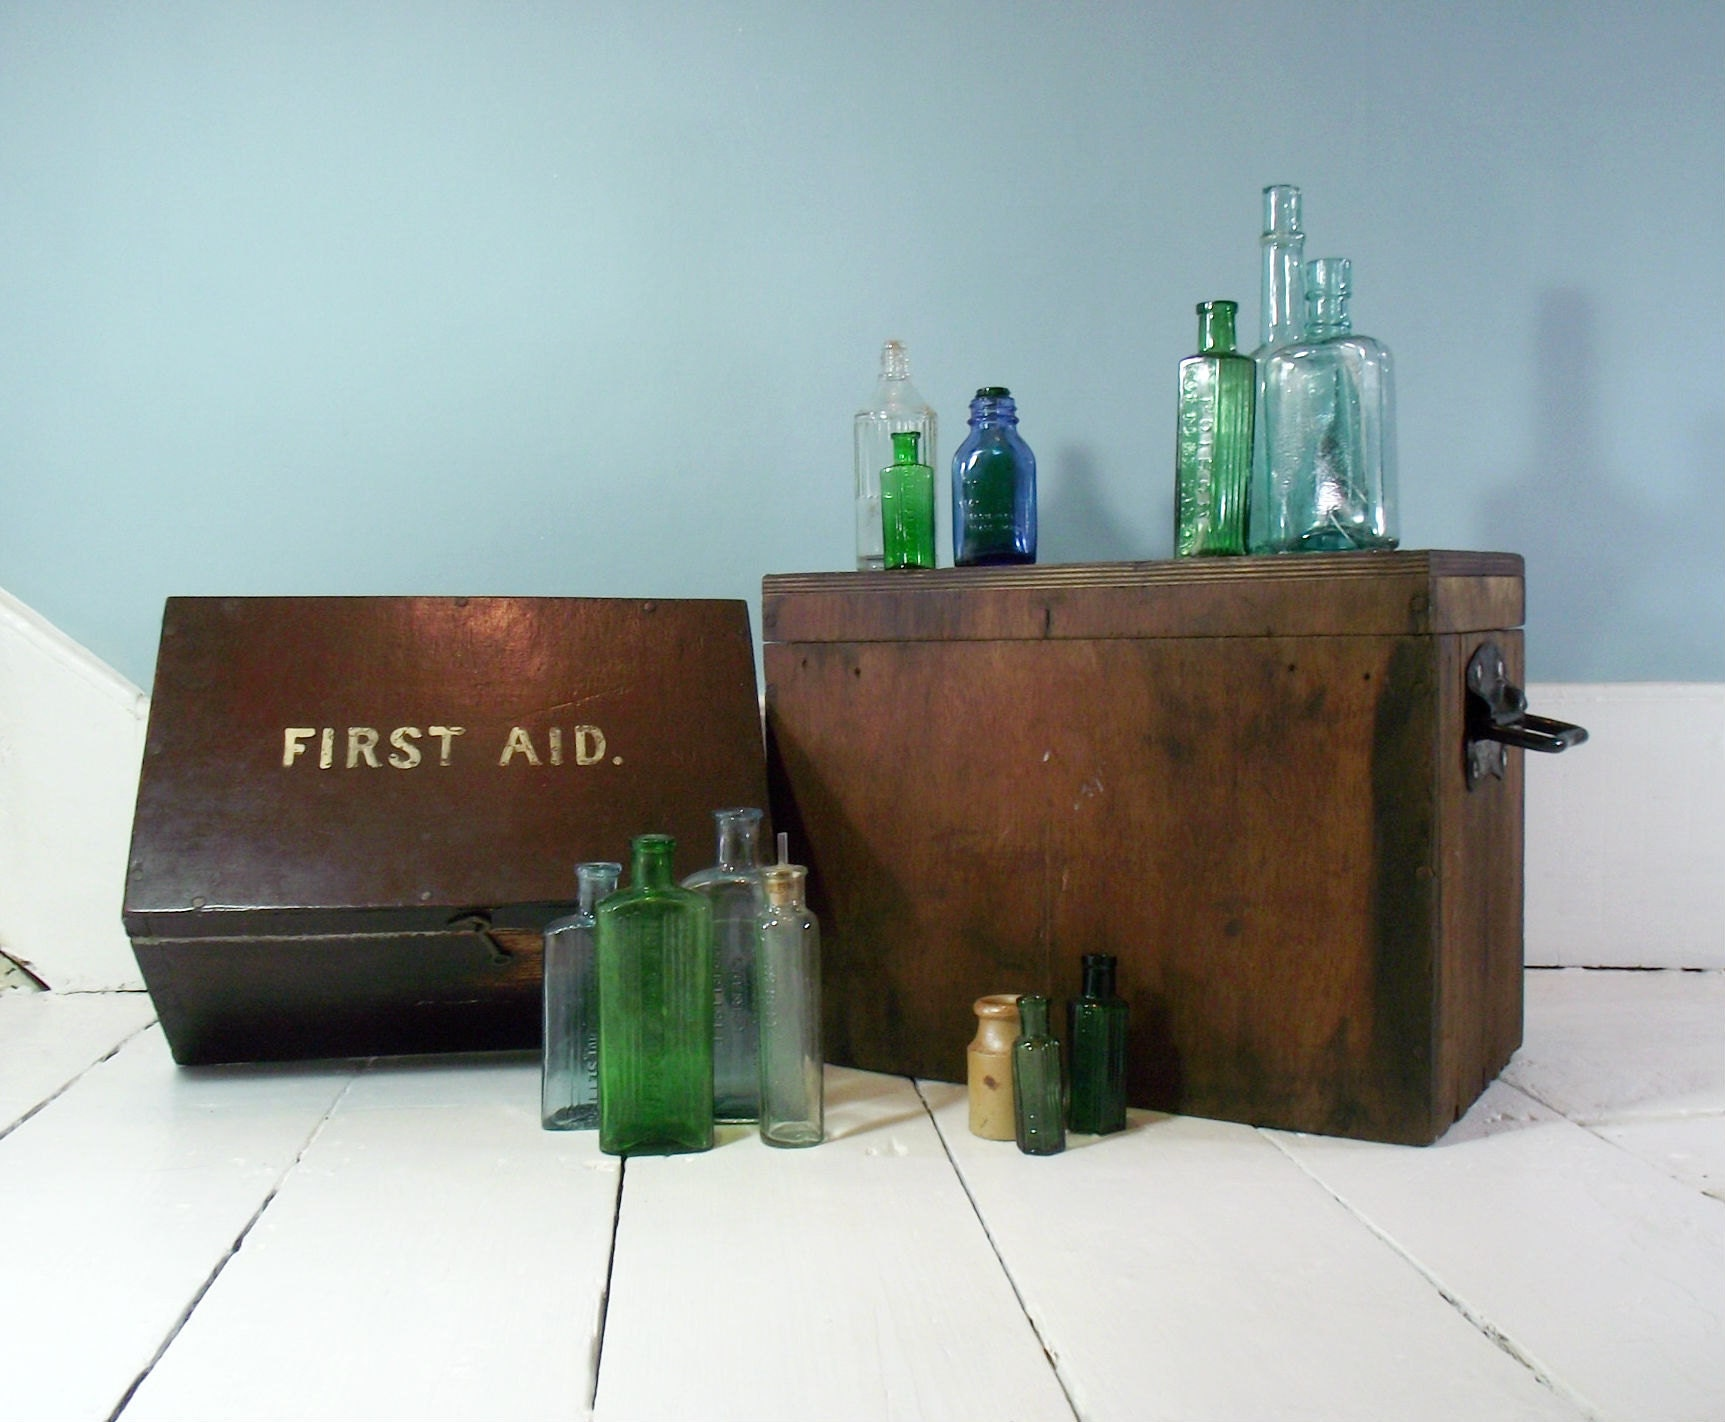 A collection of antique poison bottles and apothecary bottles with a vintage first aid box from the 1920s.